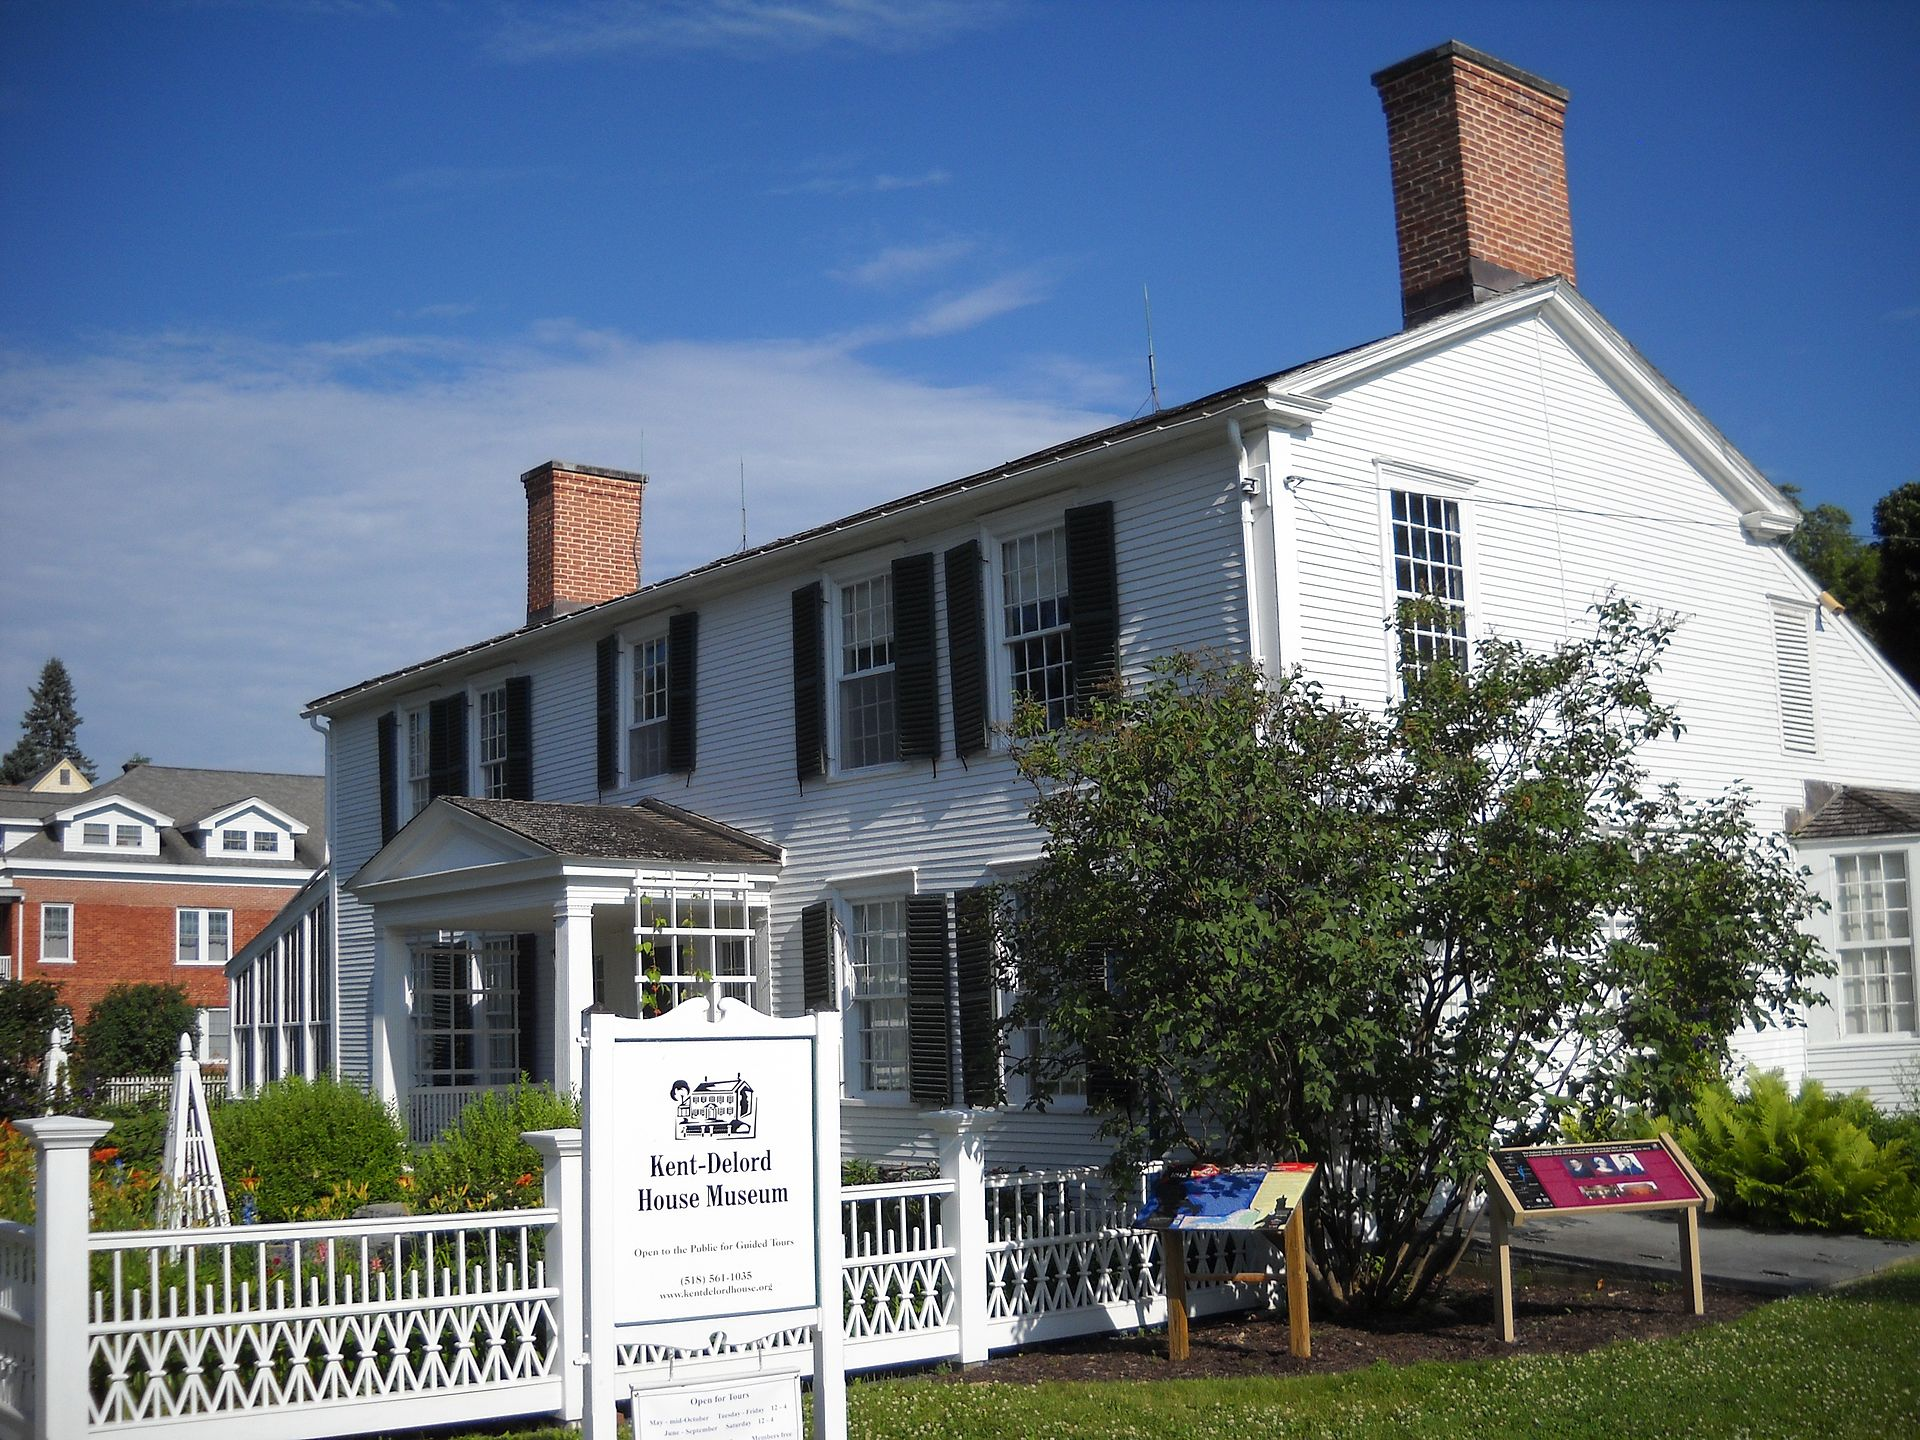 The Kent-Delord House Museum